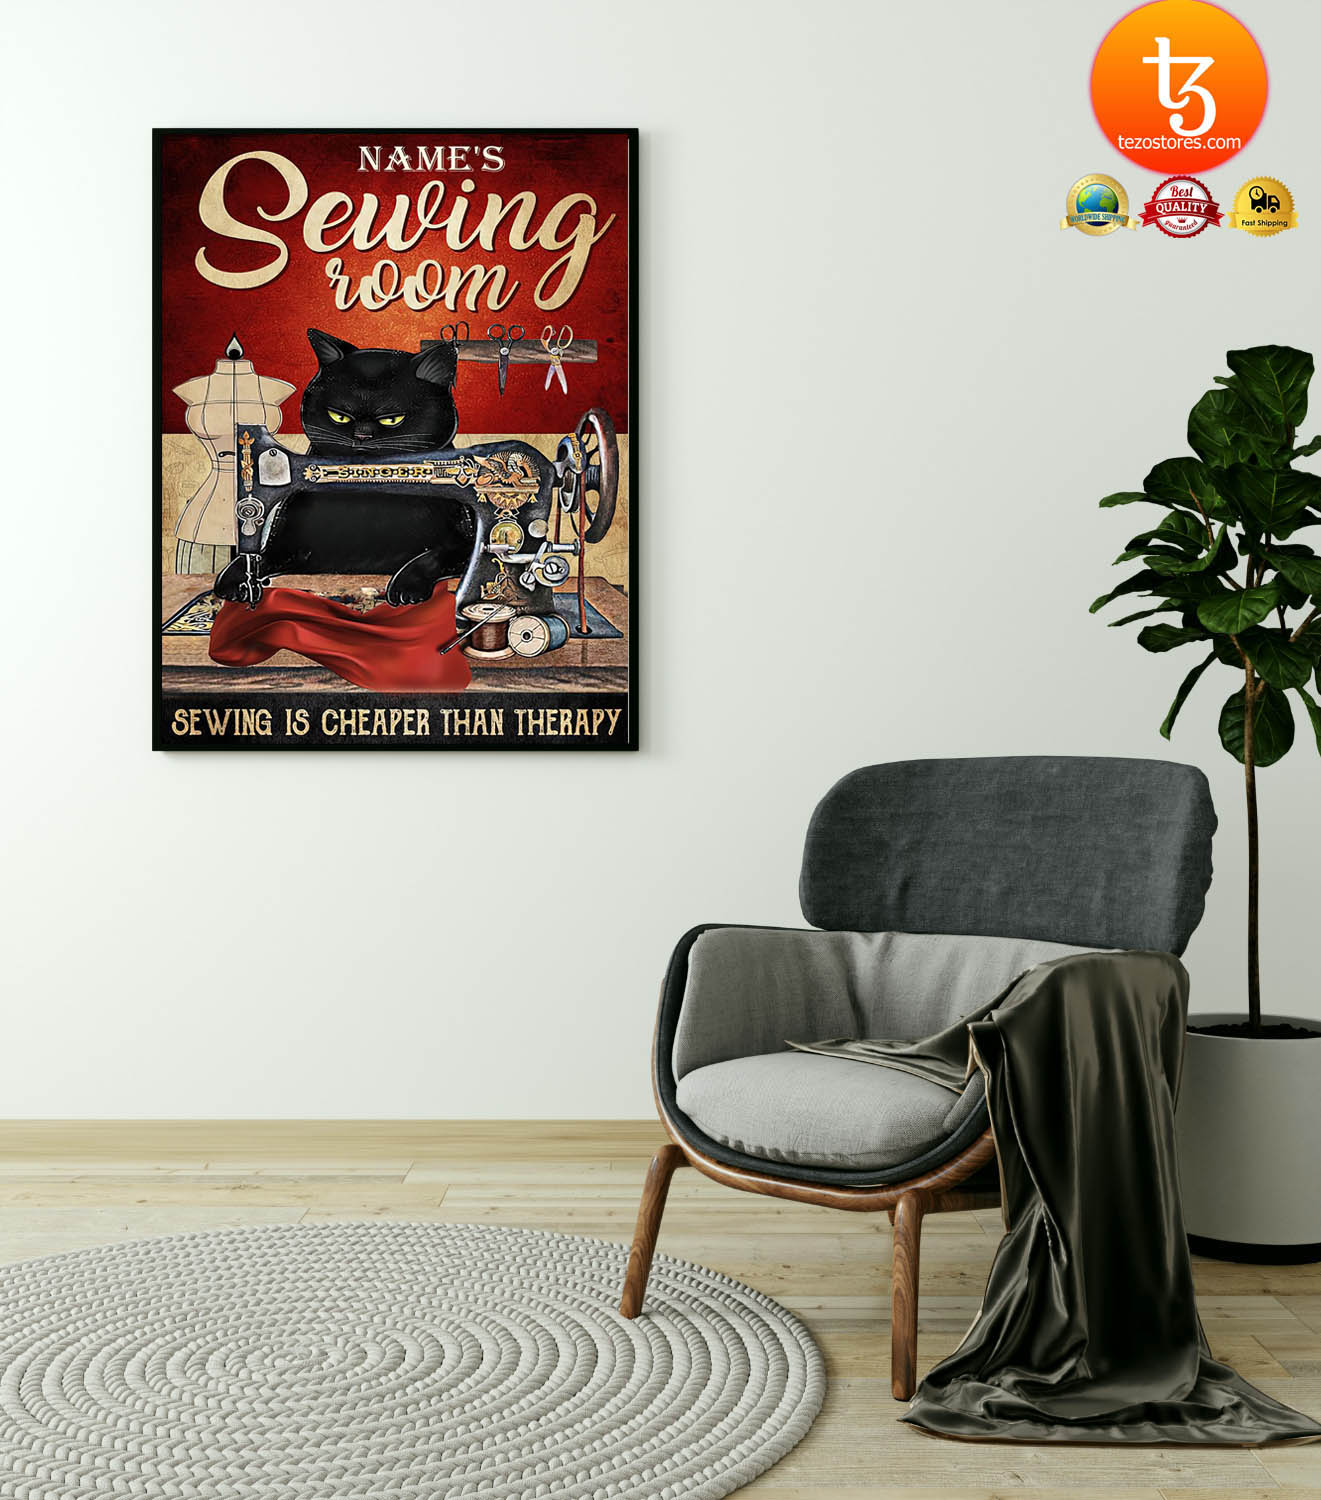 Sewing room sewing is cheaper than therapy poster 19